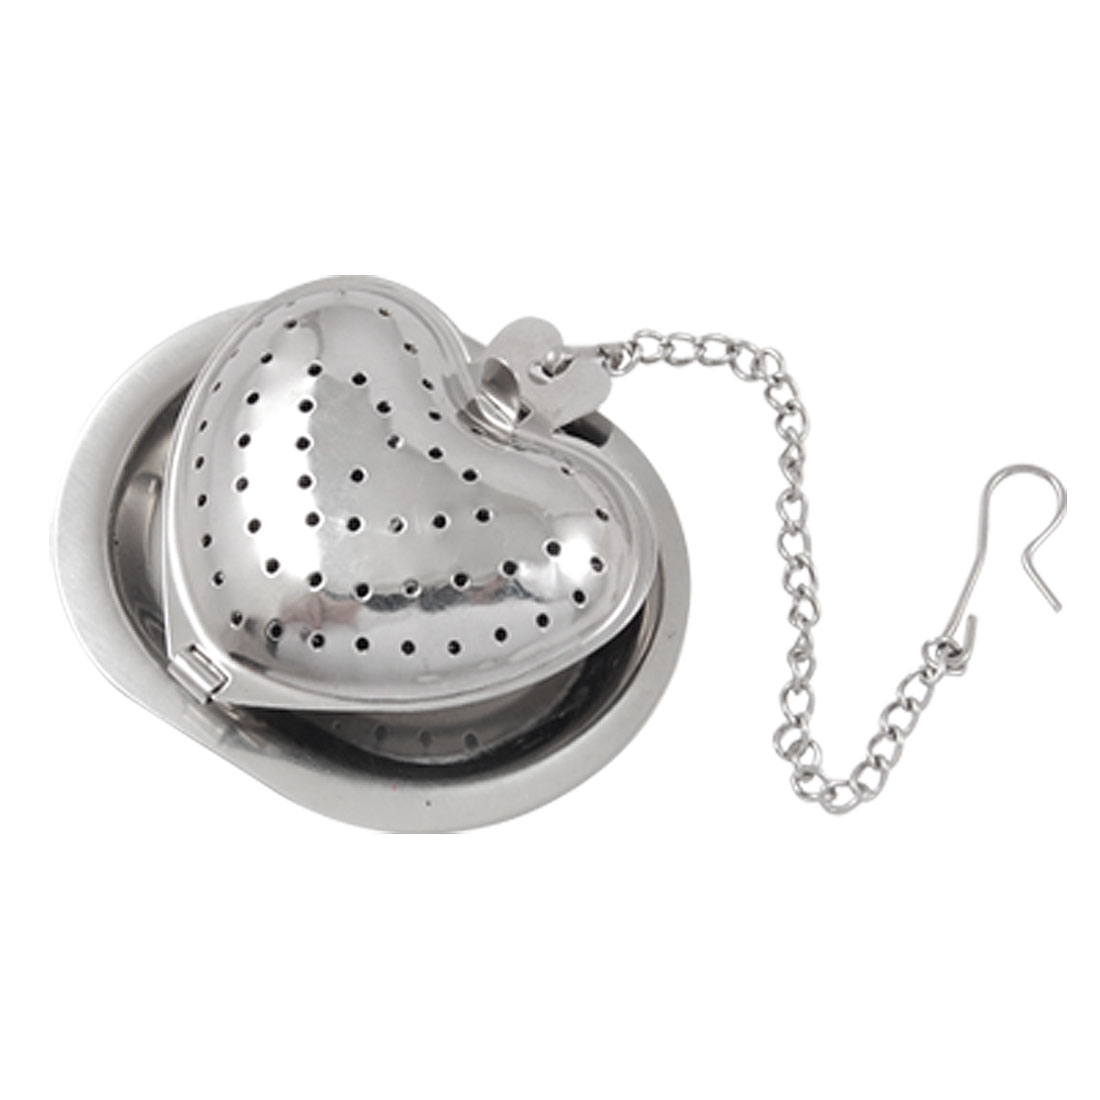 Stainless Steel Heart Shaped Tea Infuser Strainer Mesh Ball w Mini Tray